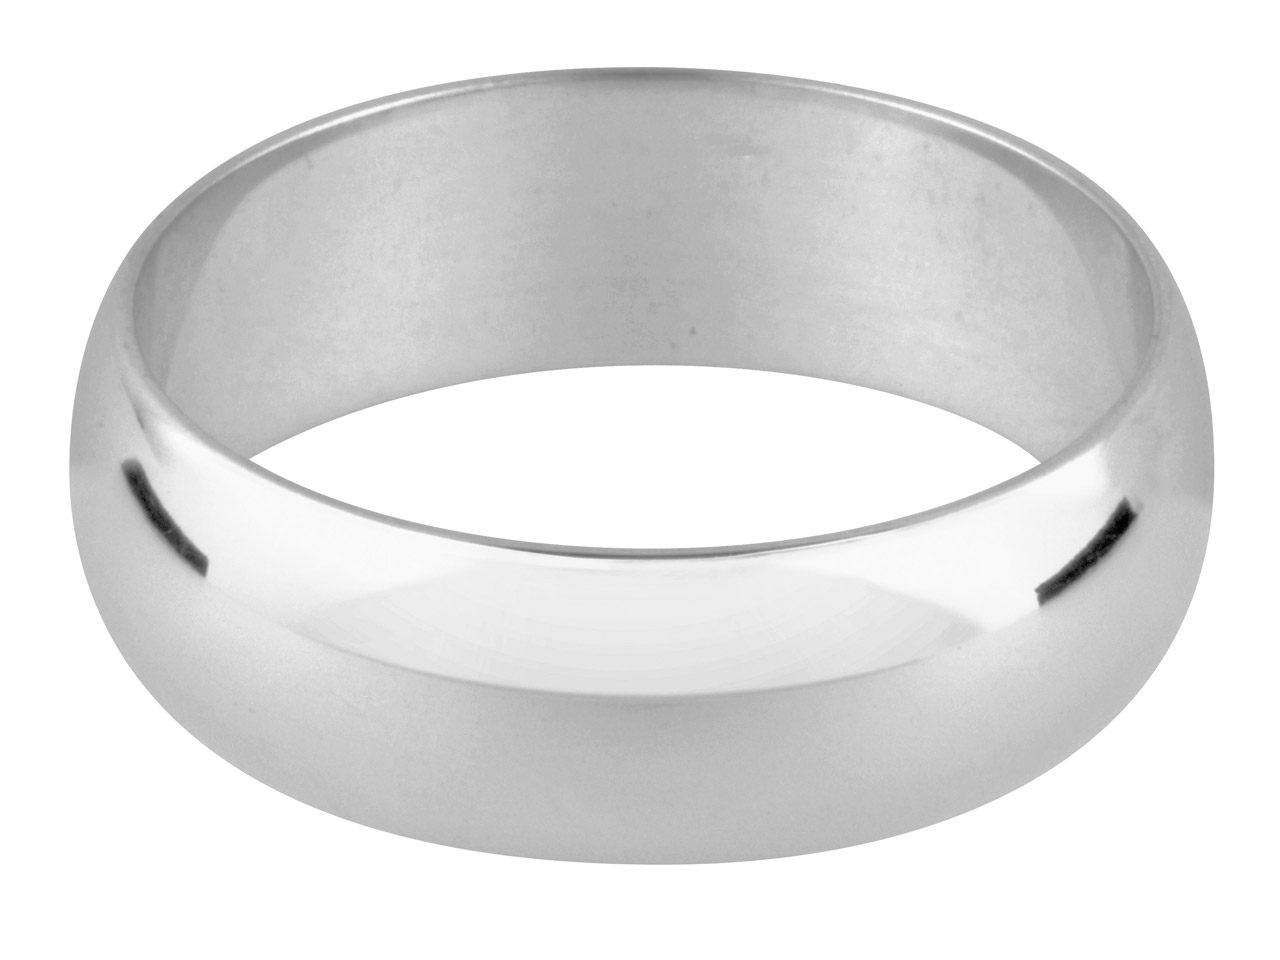 Palladium D Shape Wedding Ring     5.0mm X 4.8gms Medium Weight       Hallmarked Wall Thickness 1.24mm